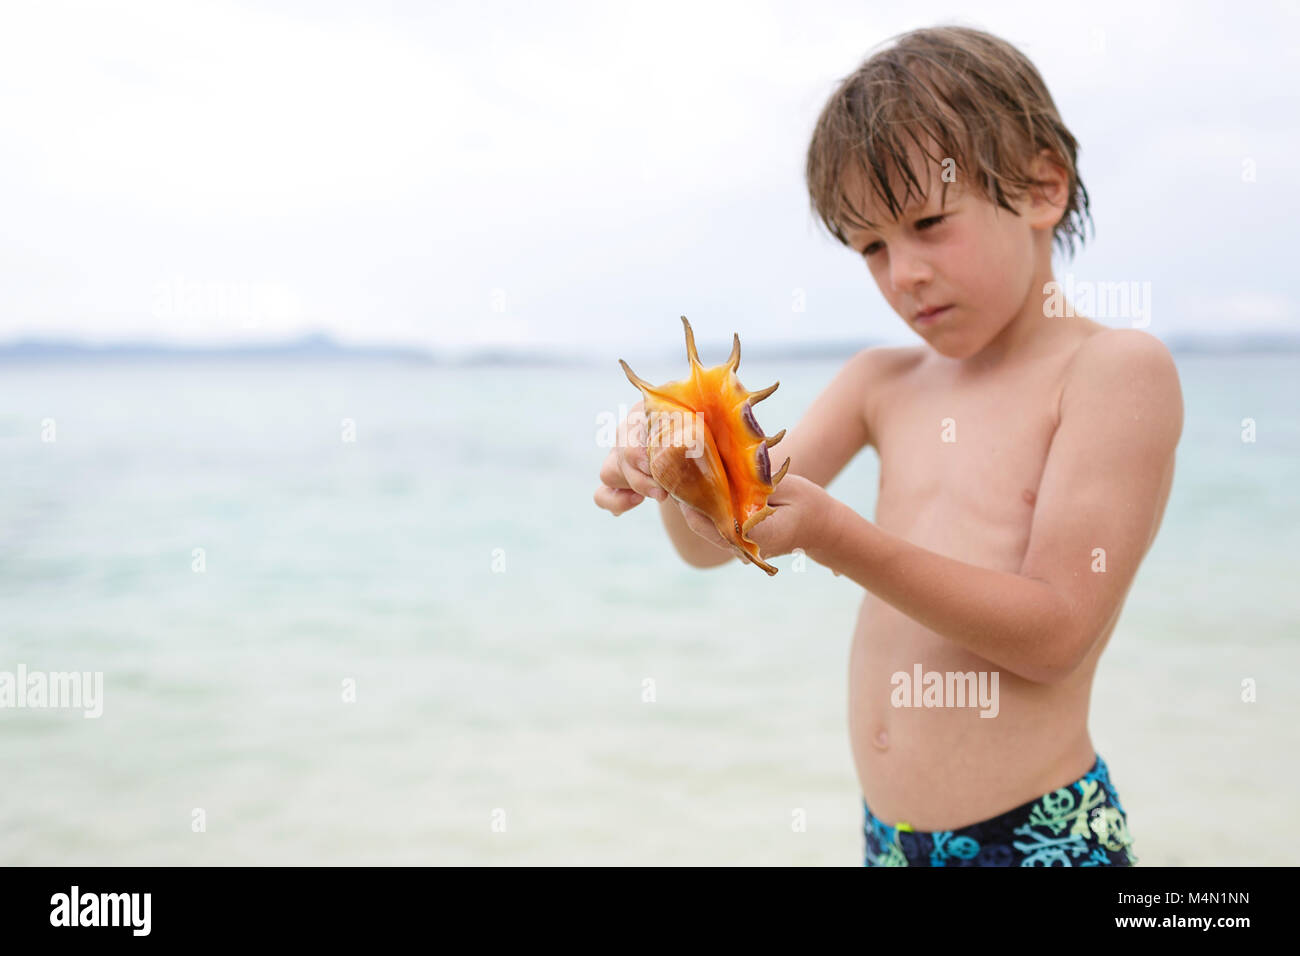 Focused face of cute boy with sea shell, closeup portrait of preteen blonde child, summer travel and beach vacation - Stock Image